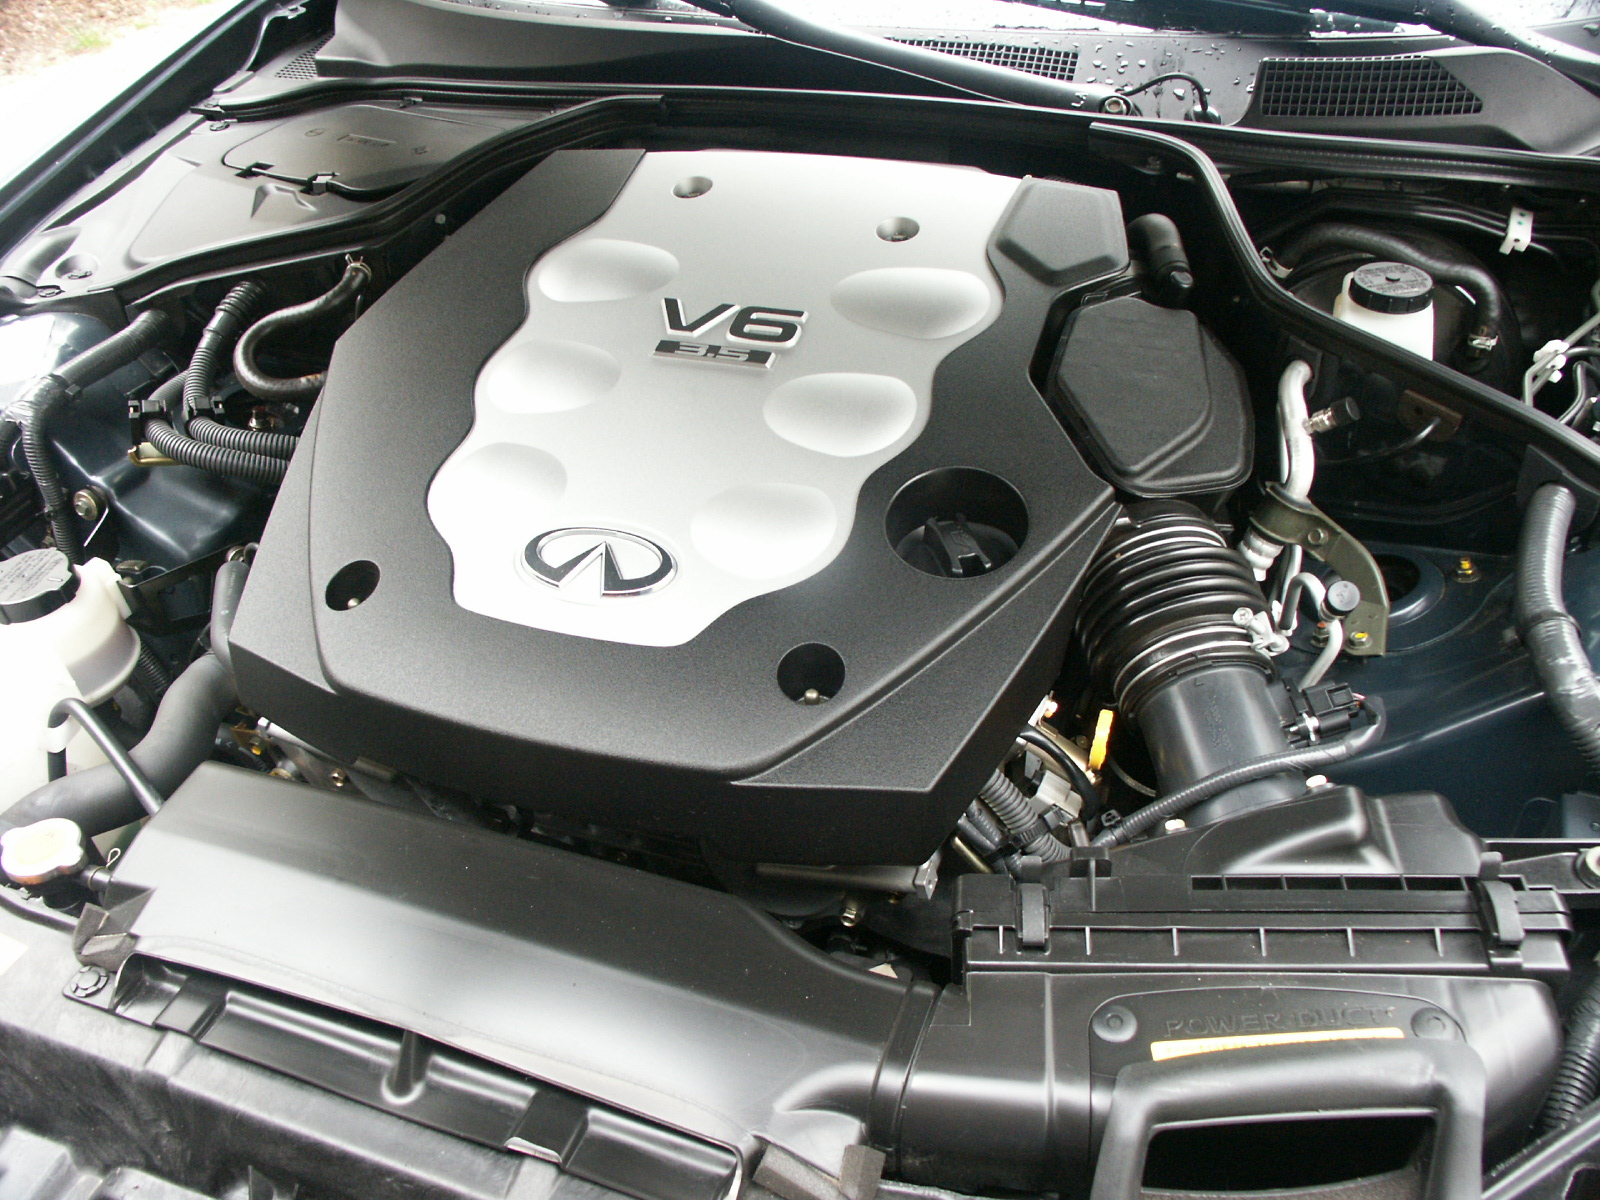 2006 G35 Engine Diagram - Wiring Diagram & Cable Management G Engine Diagram on